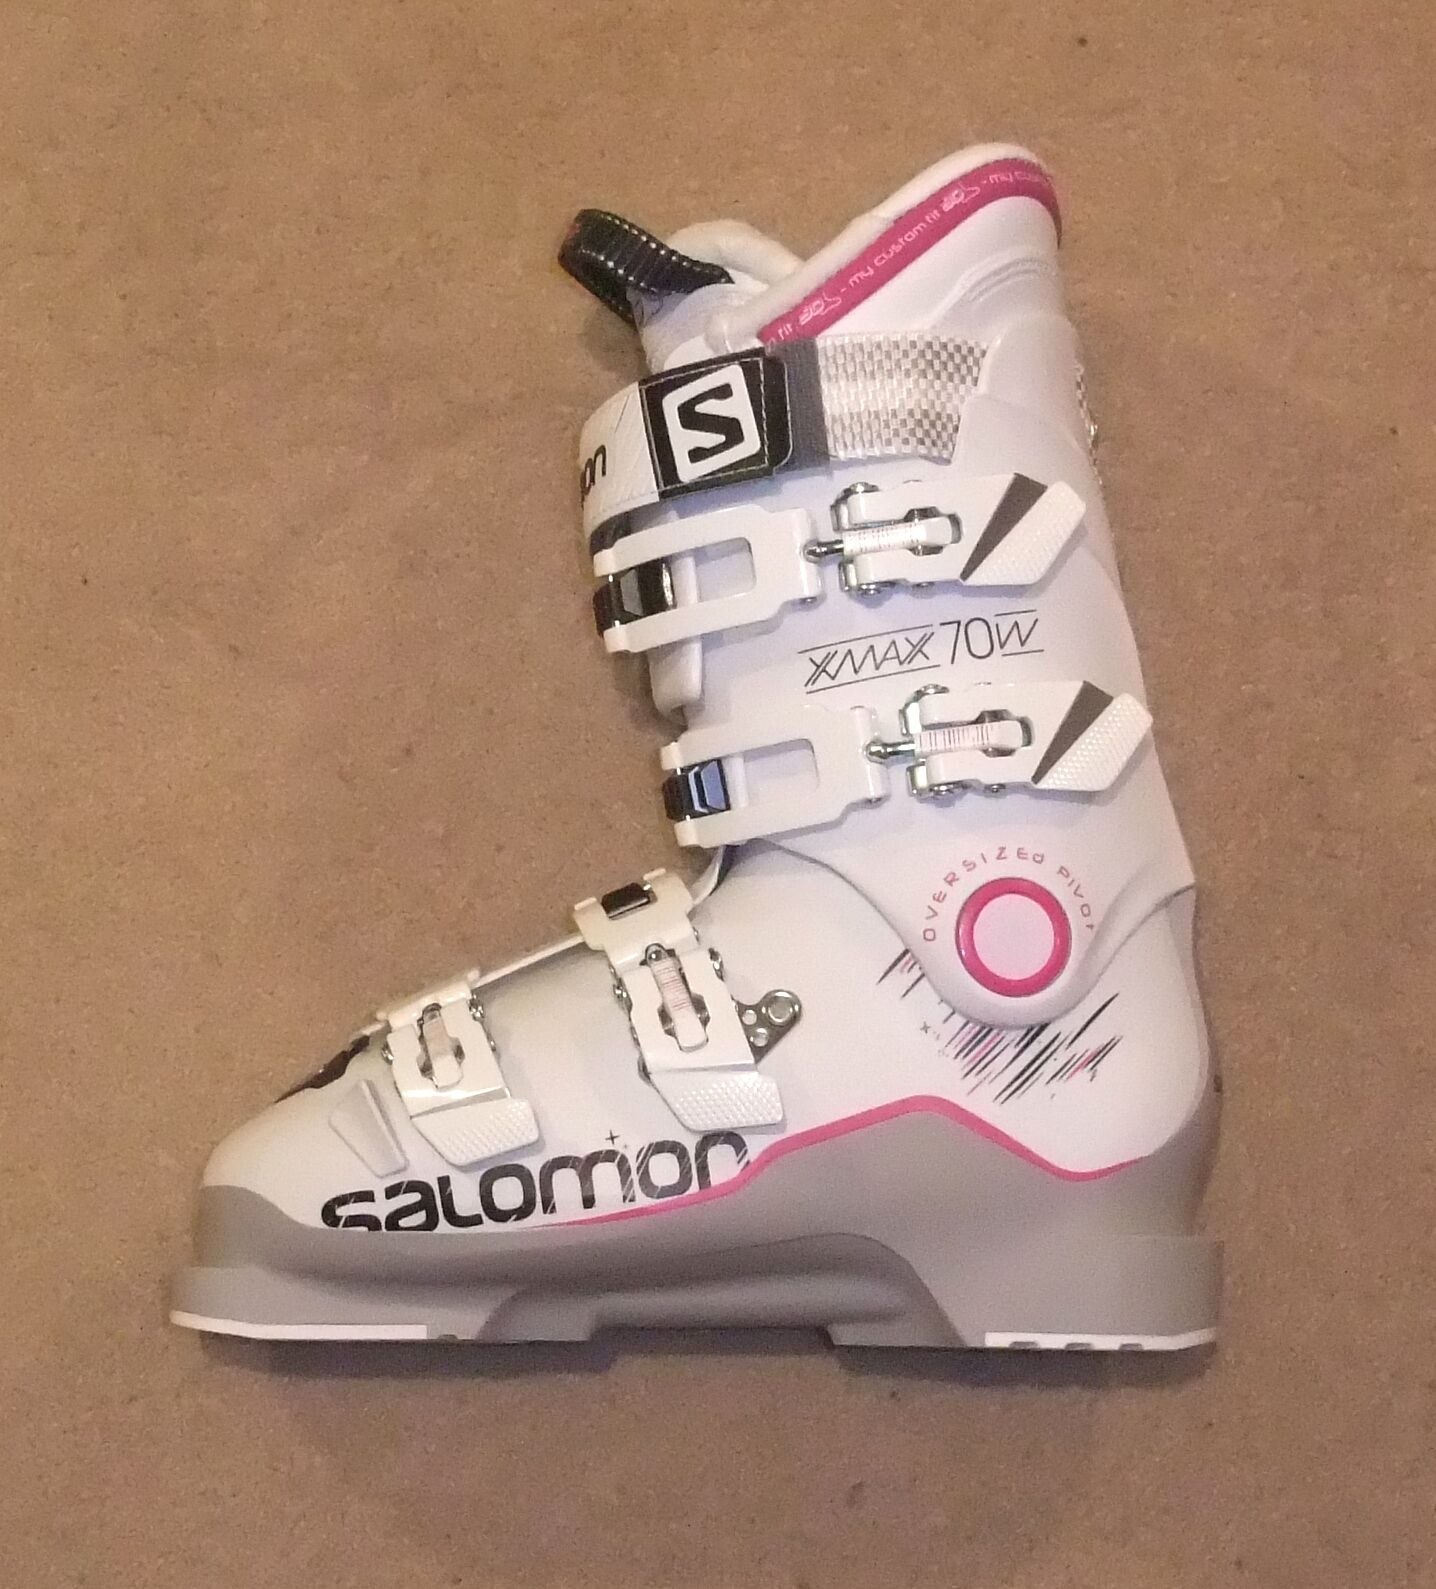 NEW NEW NEW SALOMON X MAX 70W LADIES SKI Stiefel 24.5 UK 5 72a879